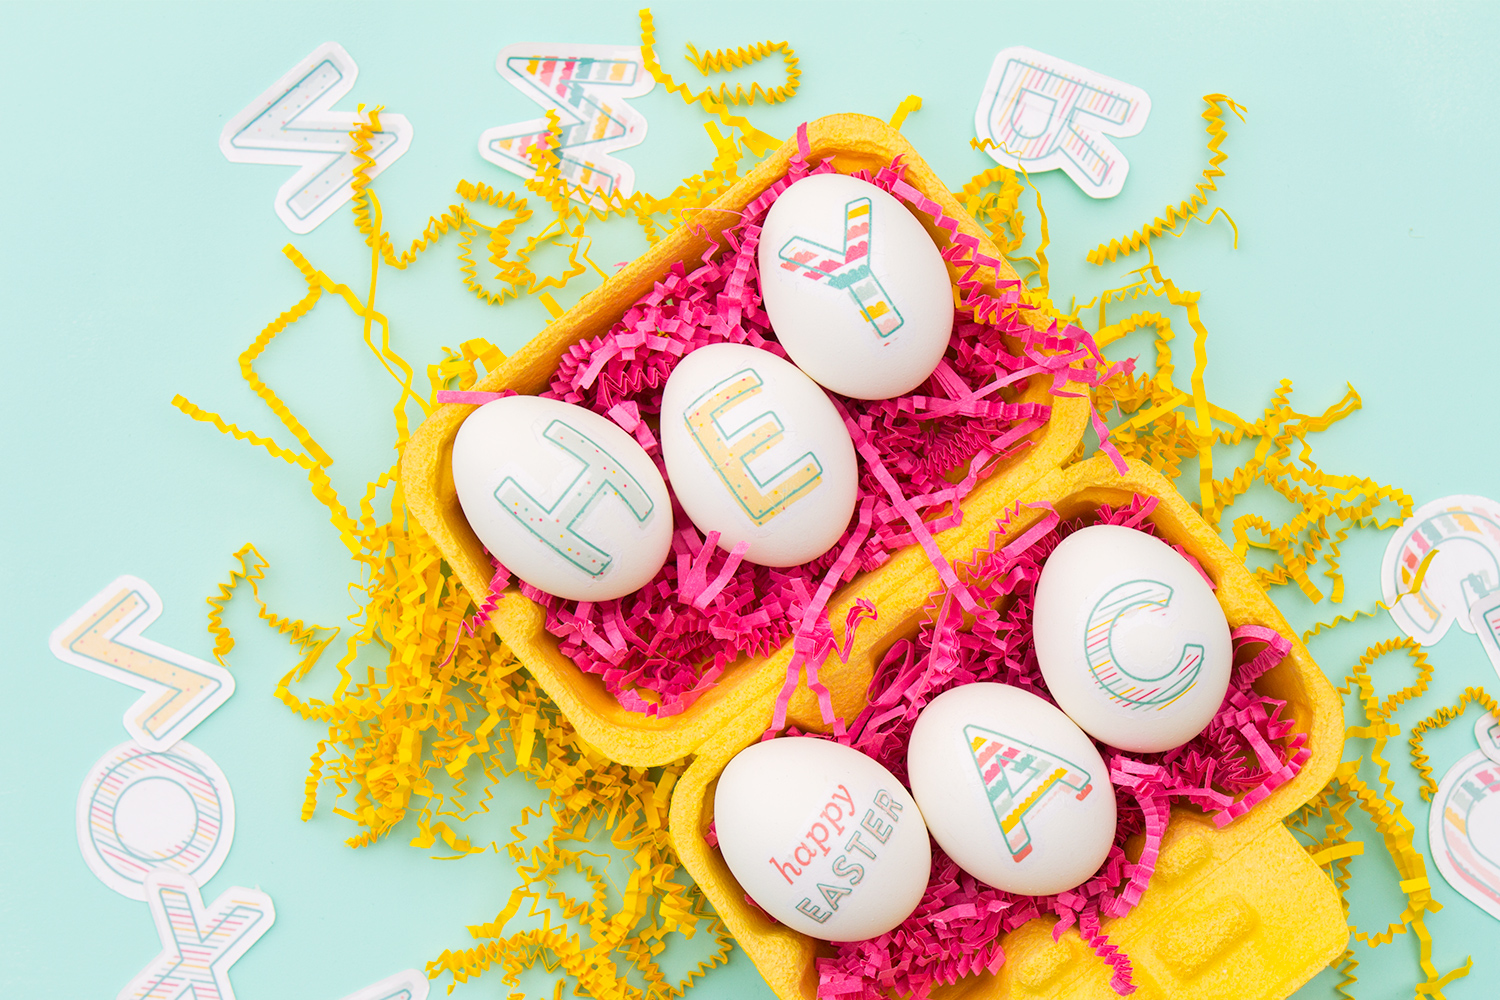 Skip dying Easter eggs this year and create your own monogram lettered eggs! Click through to download the free printable and Silhouette cut files to create your own image transfers.